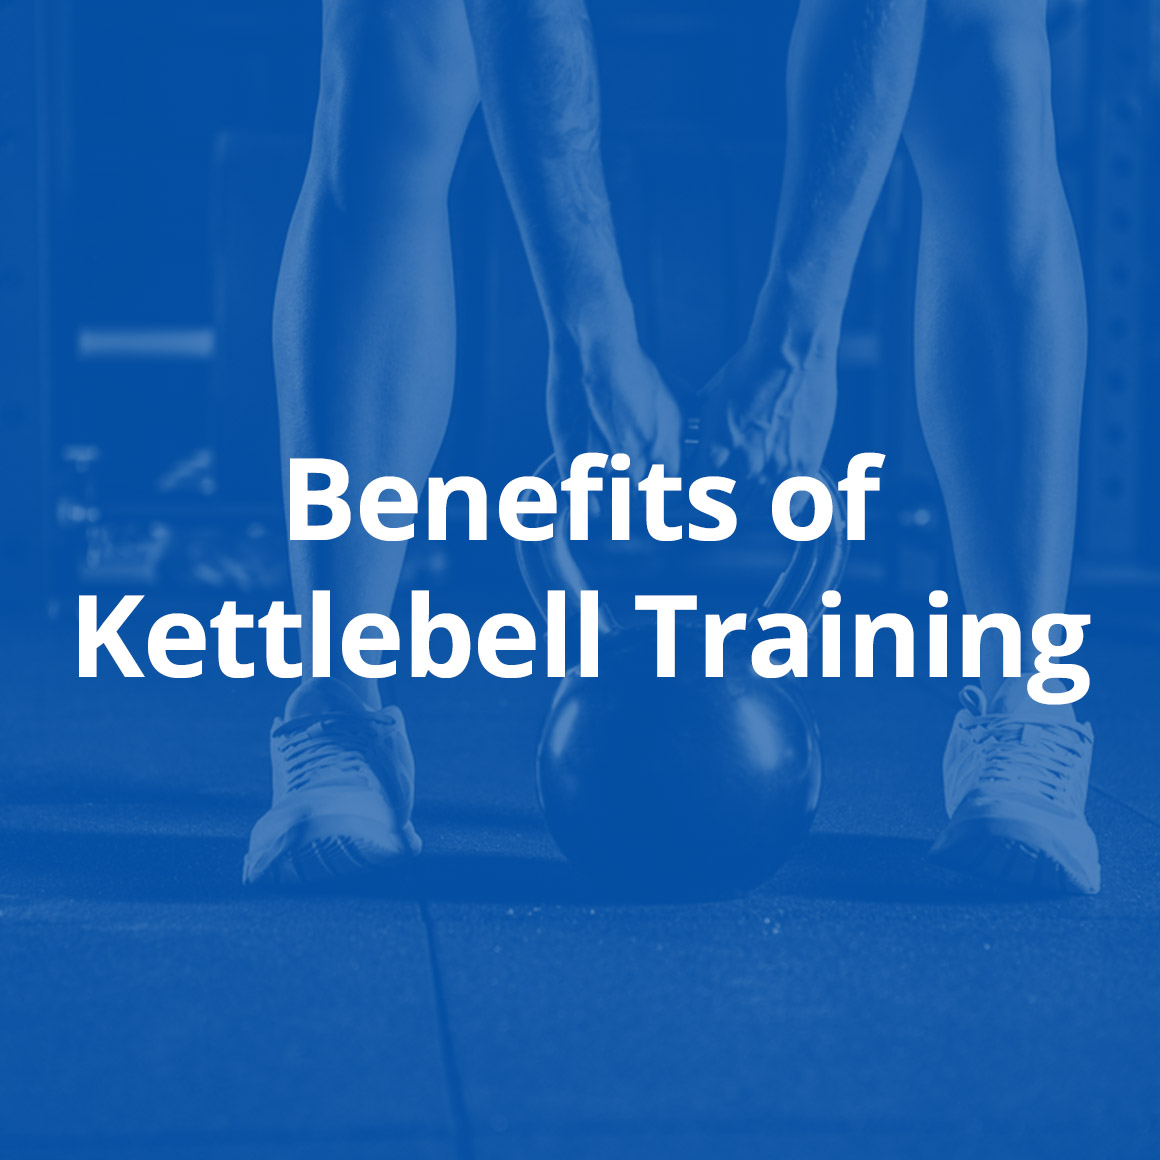 Kettlebell Training Benefits: Benefits-of-kettlebell-training